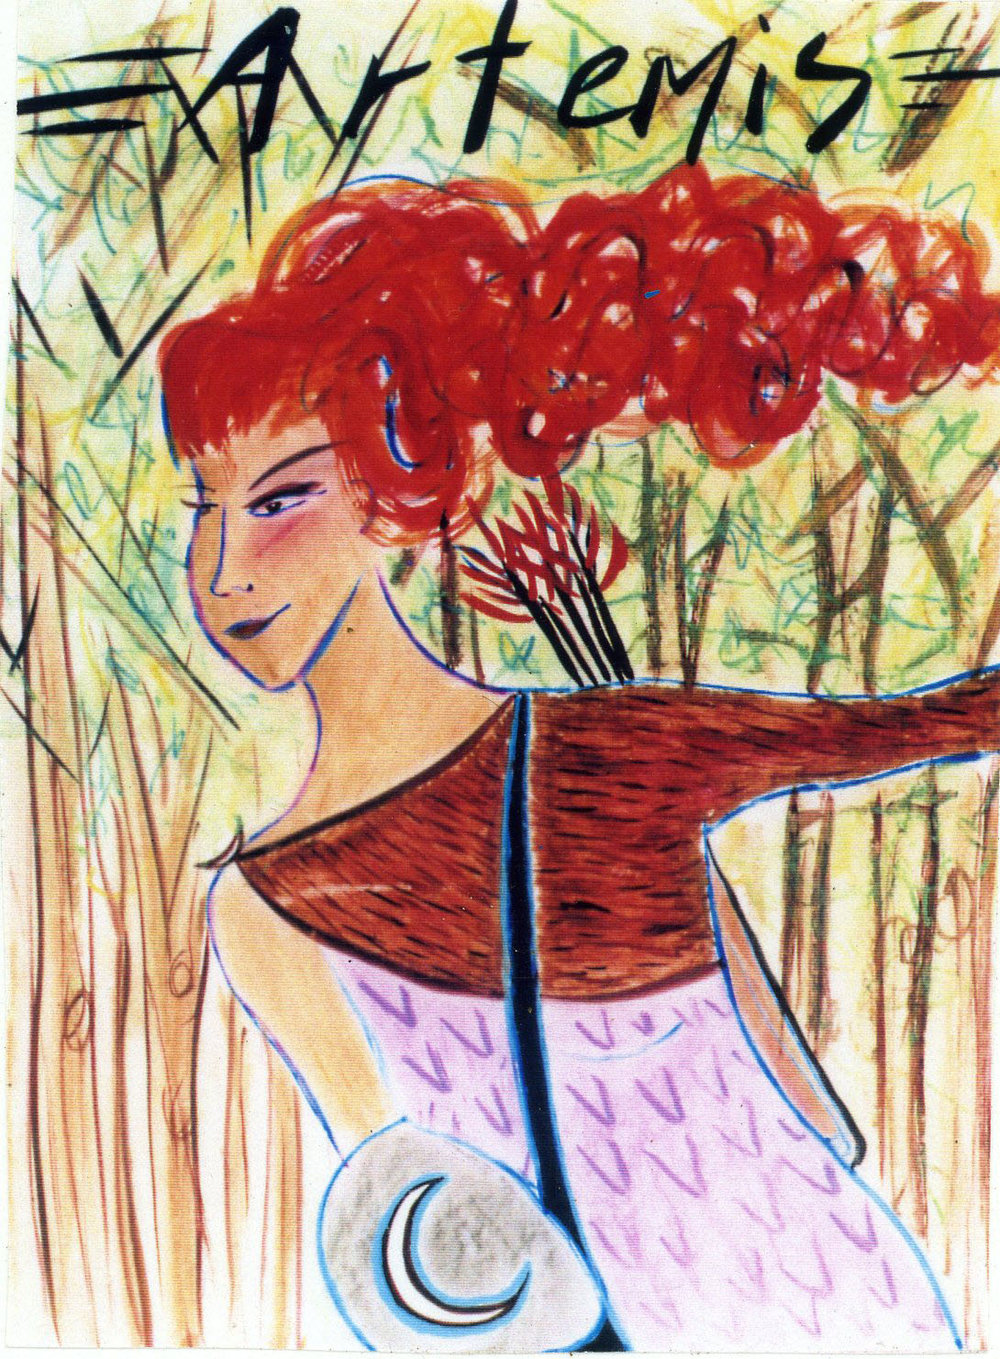 Artemis.     Mixed media on board, 24 x 36 inches.    © 1997 by Kathy Crabbe